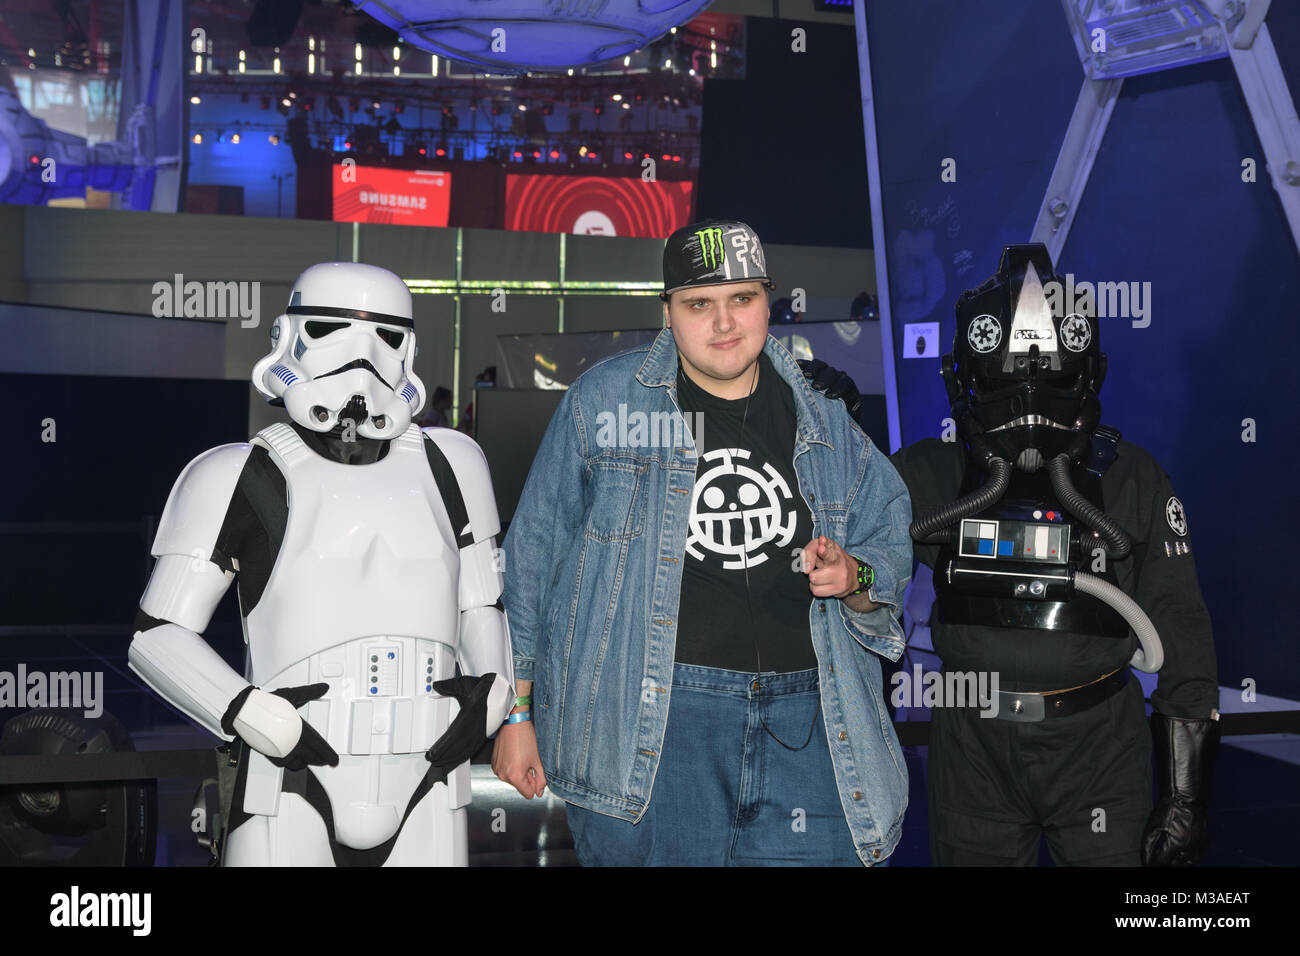 Cologne, Germany - August 24, 2017: A gamer posing with two star wars actors for the game star wars battlefront - Stock Image